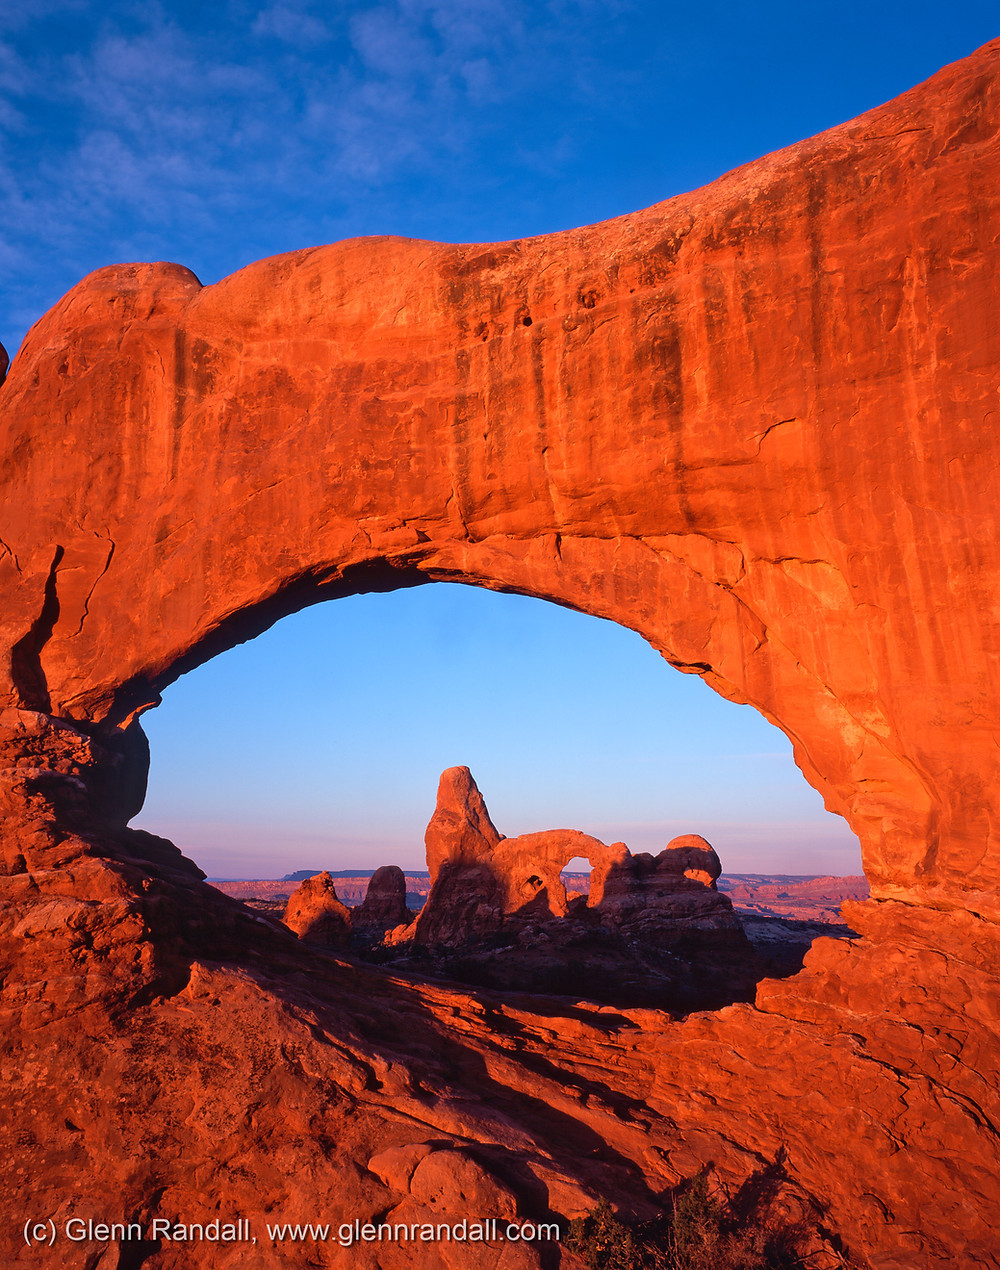 Figure 1. Turret Arch through North Window, Arches National Park, Utah